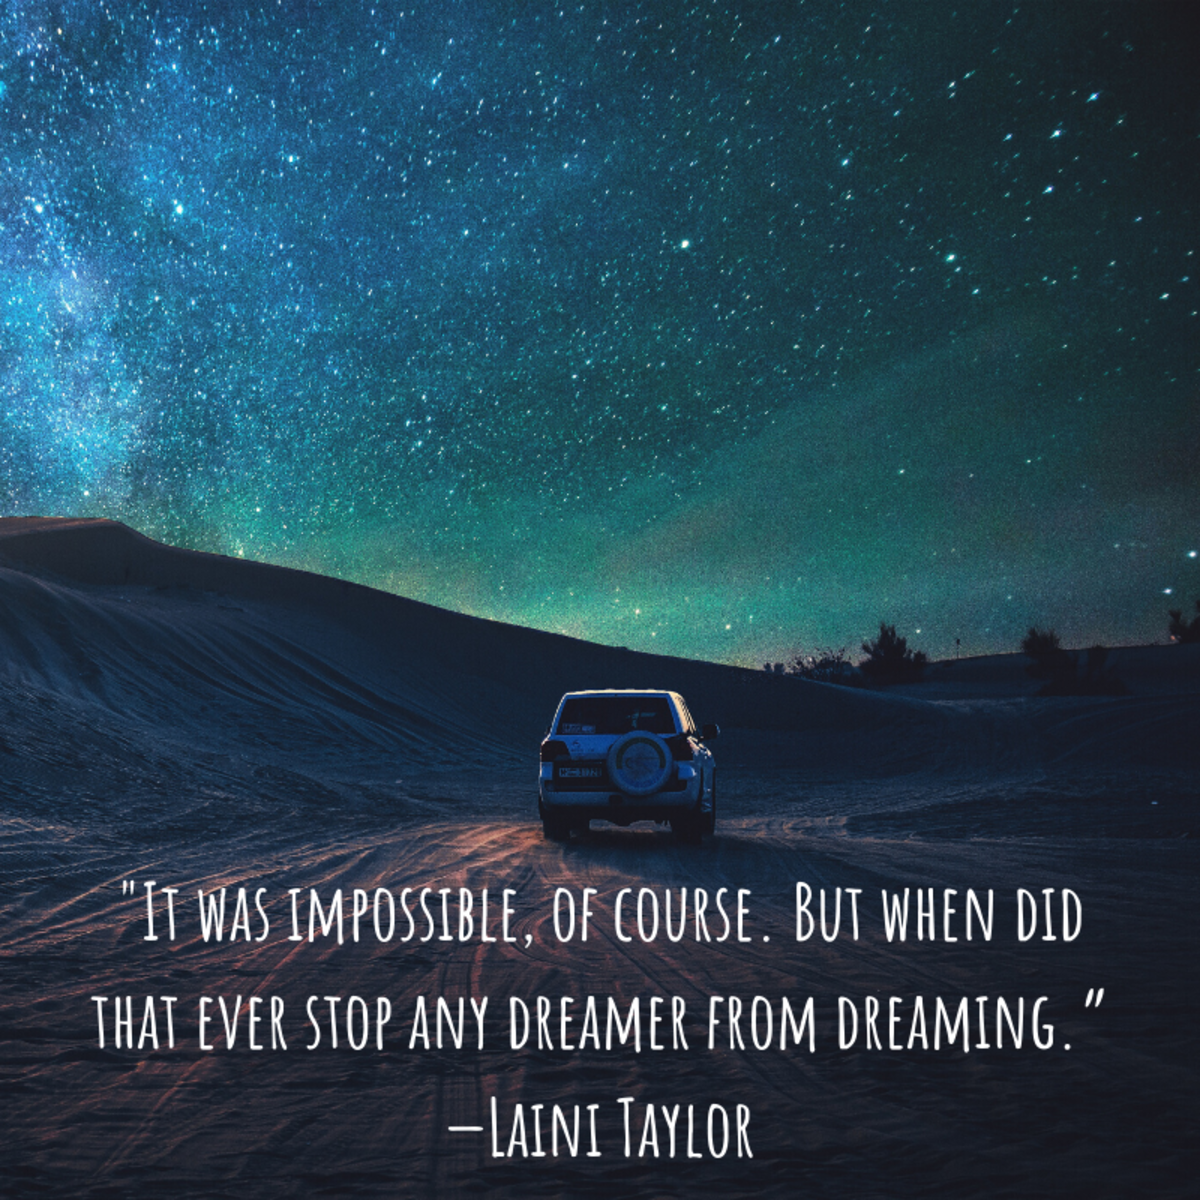 """It was impossible, of course. But when did that ever stop any dreamer from dreaming."" —Laini Taylor"